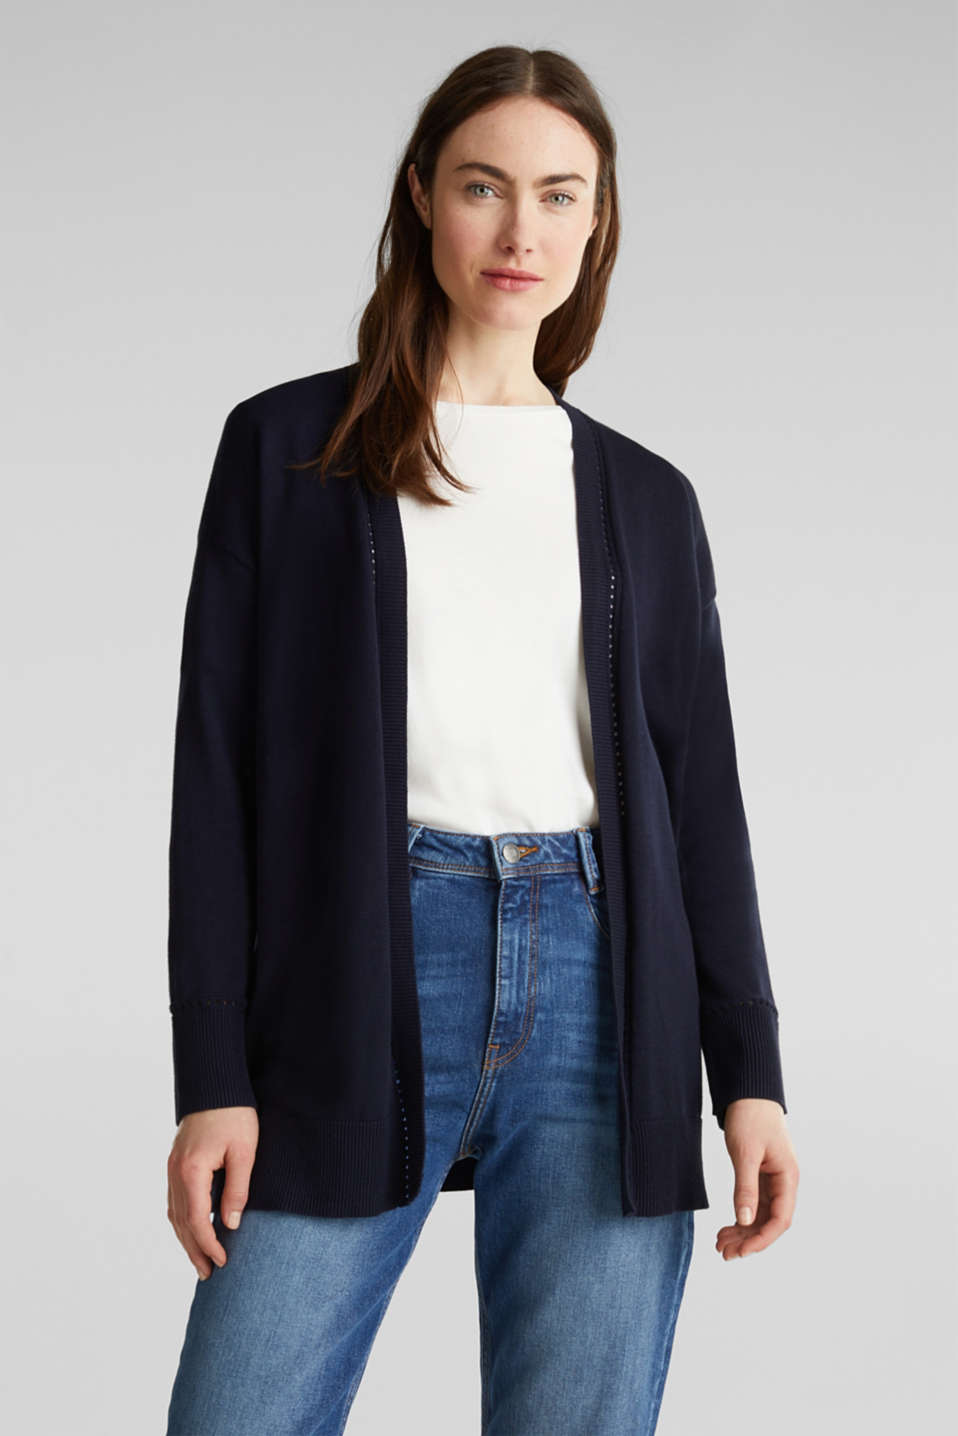 Cardigan with open-work pattern details, NAVY, detail image number 0